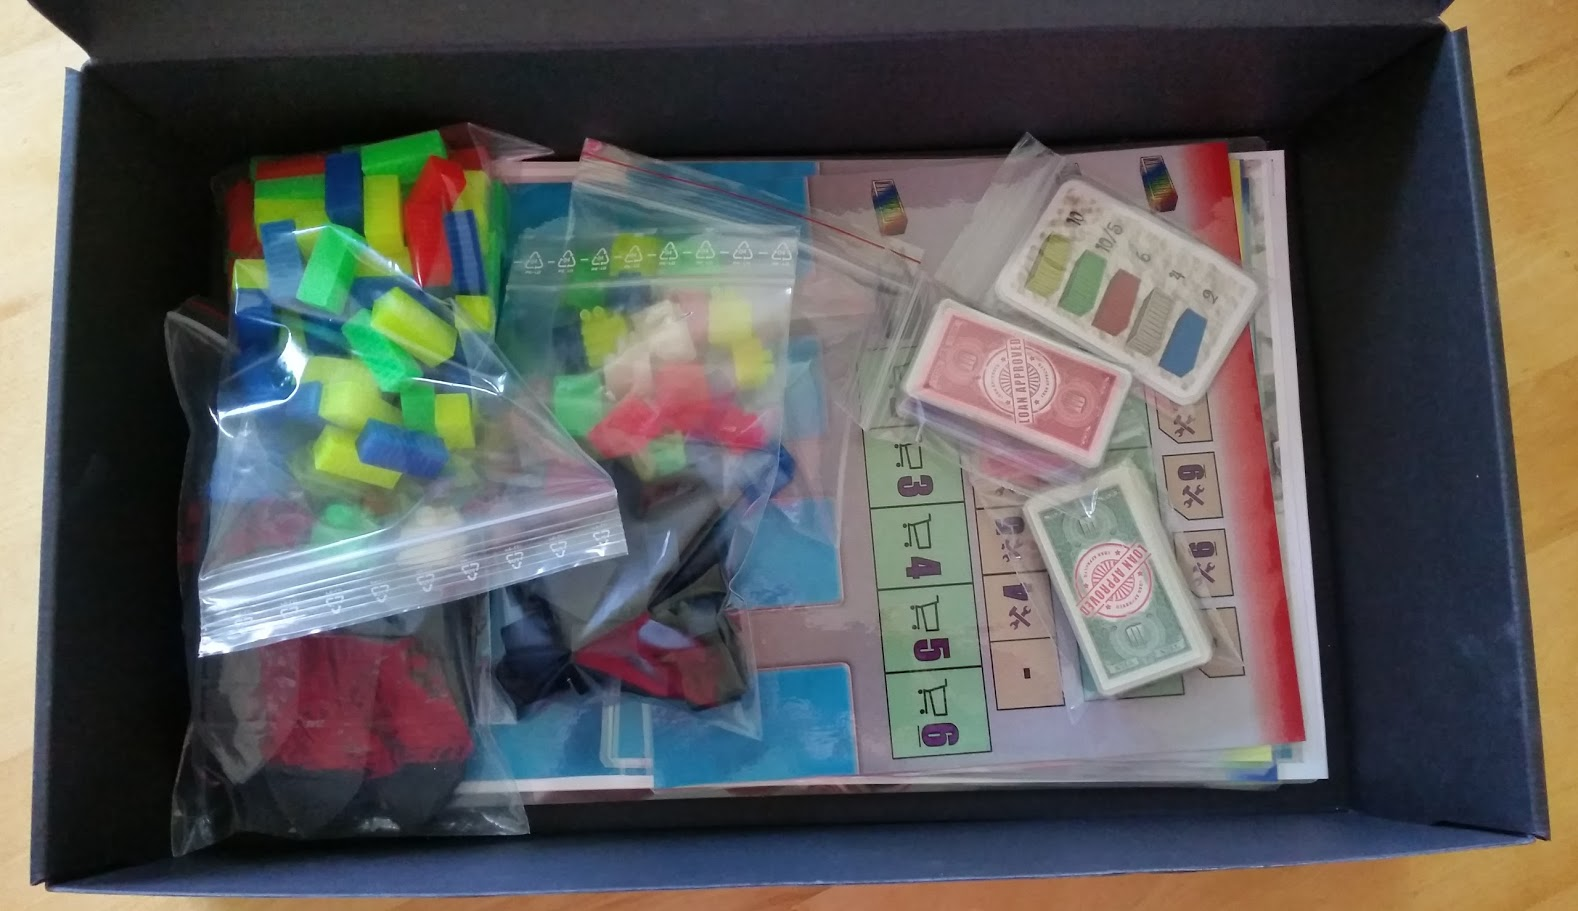 container_board_game_3d_print_013.jpg